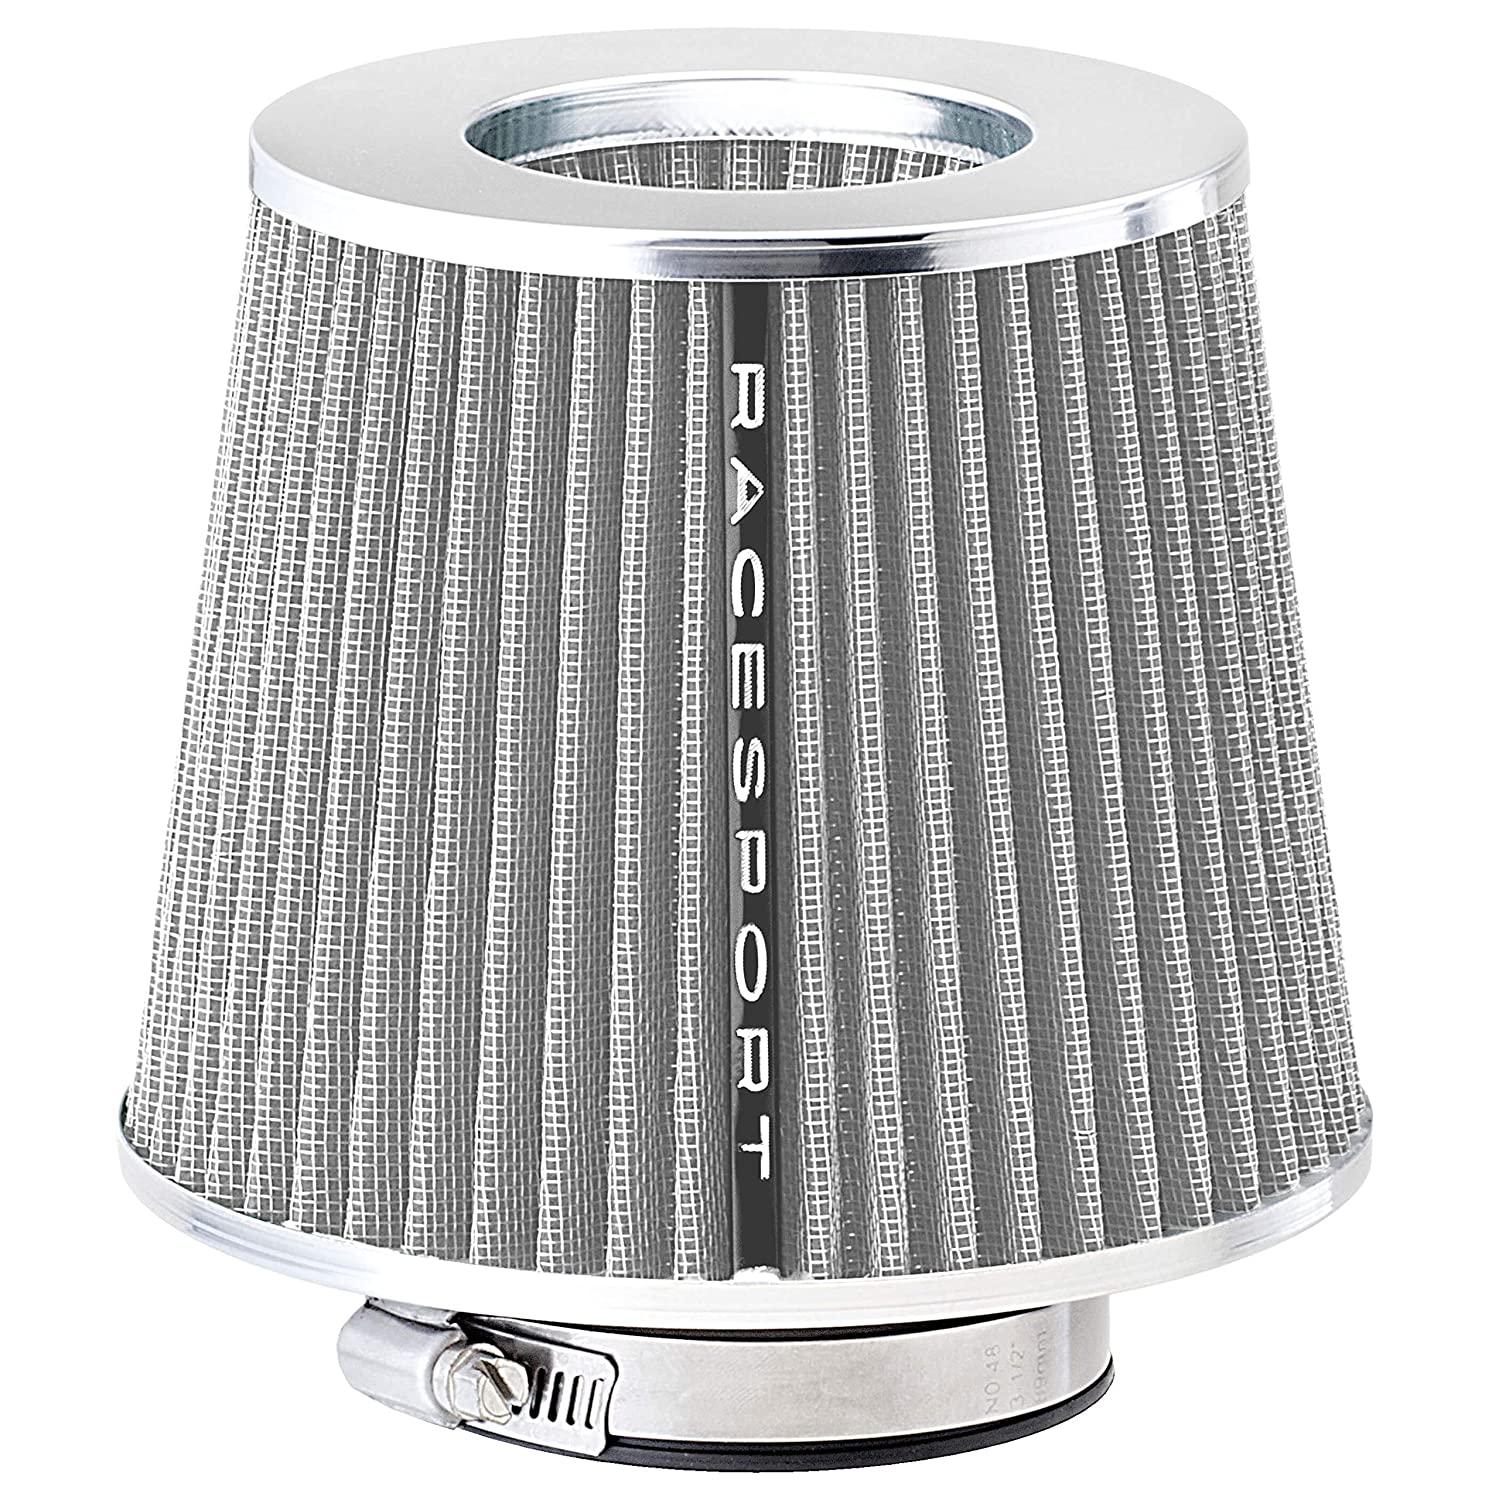 Sumex AIRSTRM Universal Sports Air Filter with Adaptors - Grey